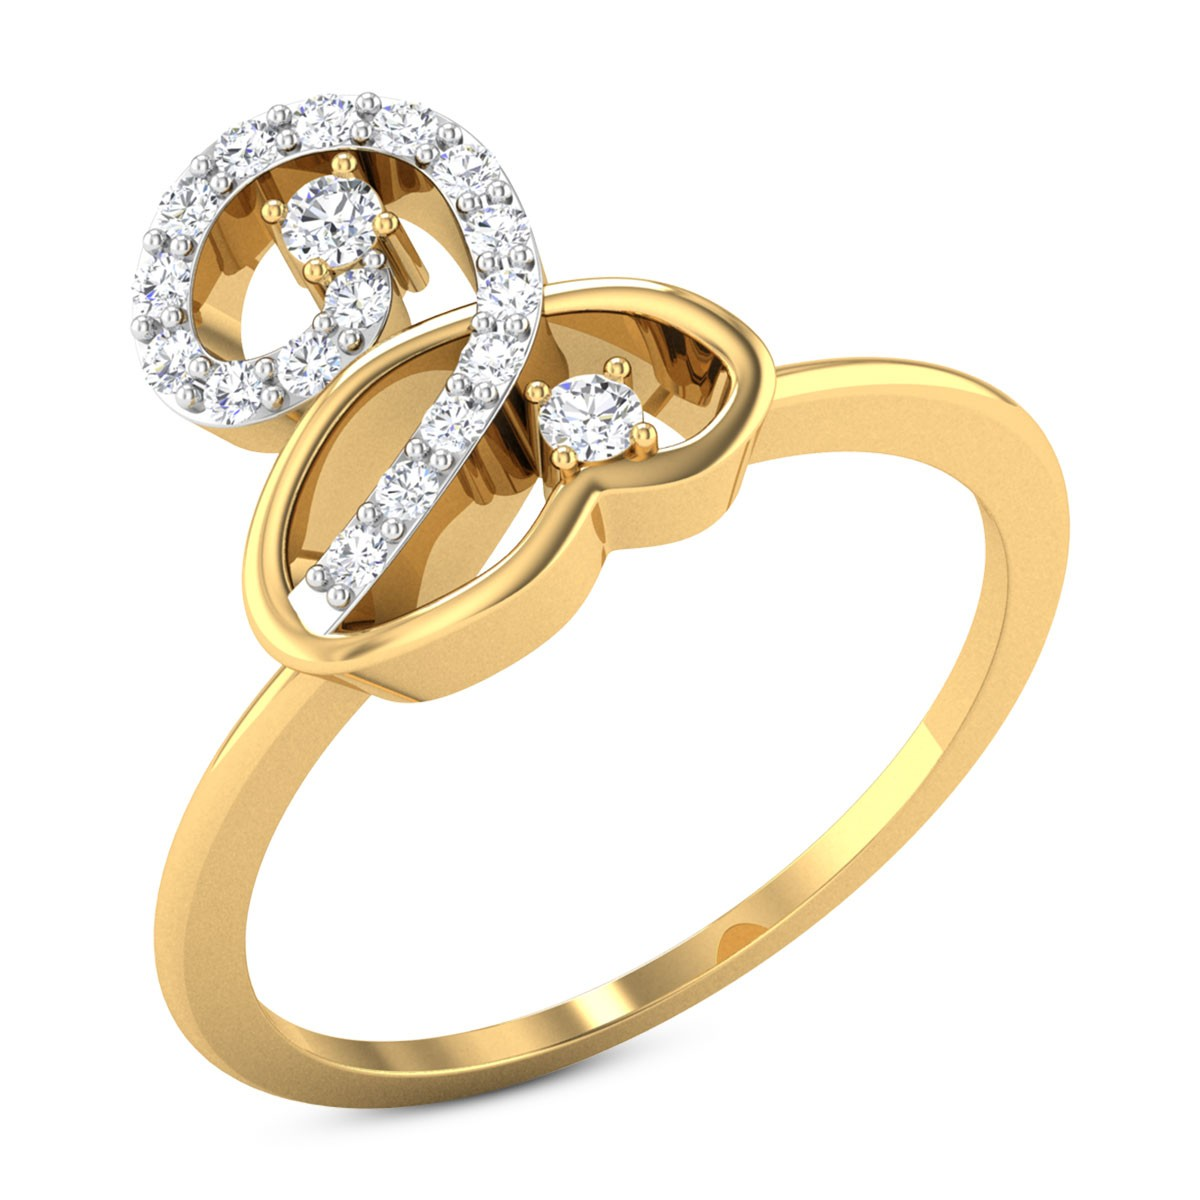 Buy Louise Diamond Ring in 2.01 Grams Gold Online